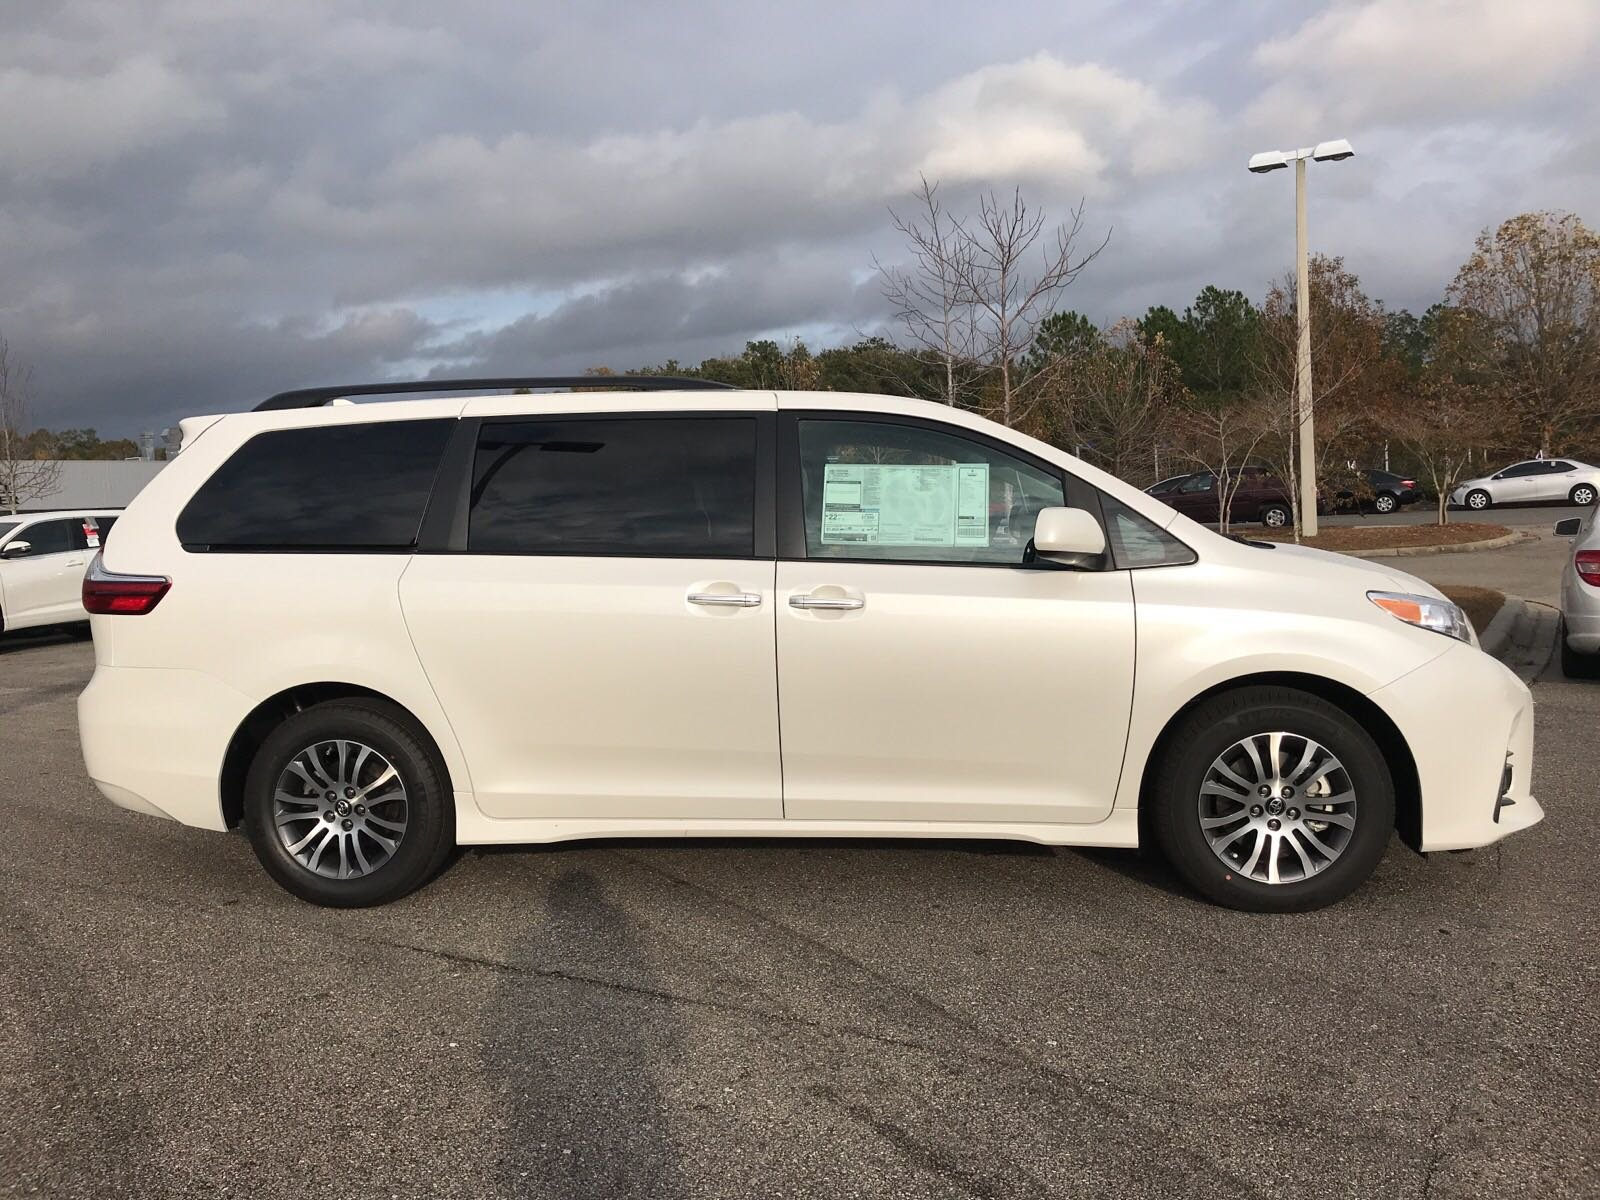 Toyota Sienna Service Manual: Lubrication system